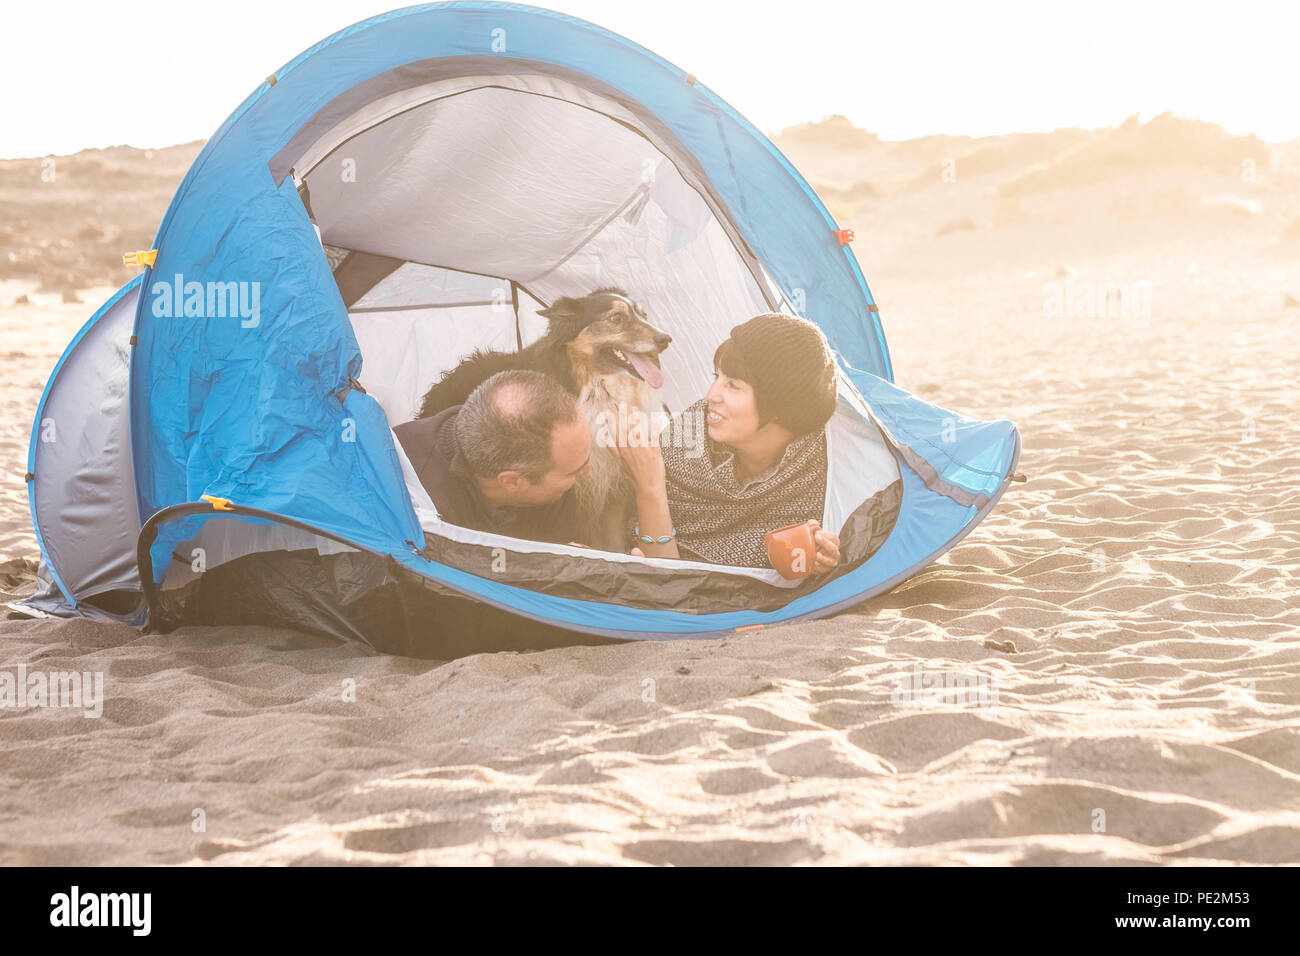 couple in outdoor free camping leisure activity have fun inside tiny home at the beach. Dog border collie behind them with love and friendship forever - Stock Image